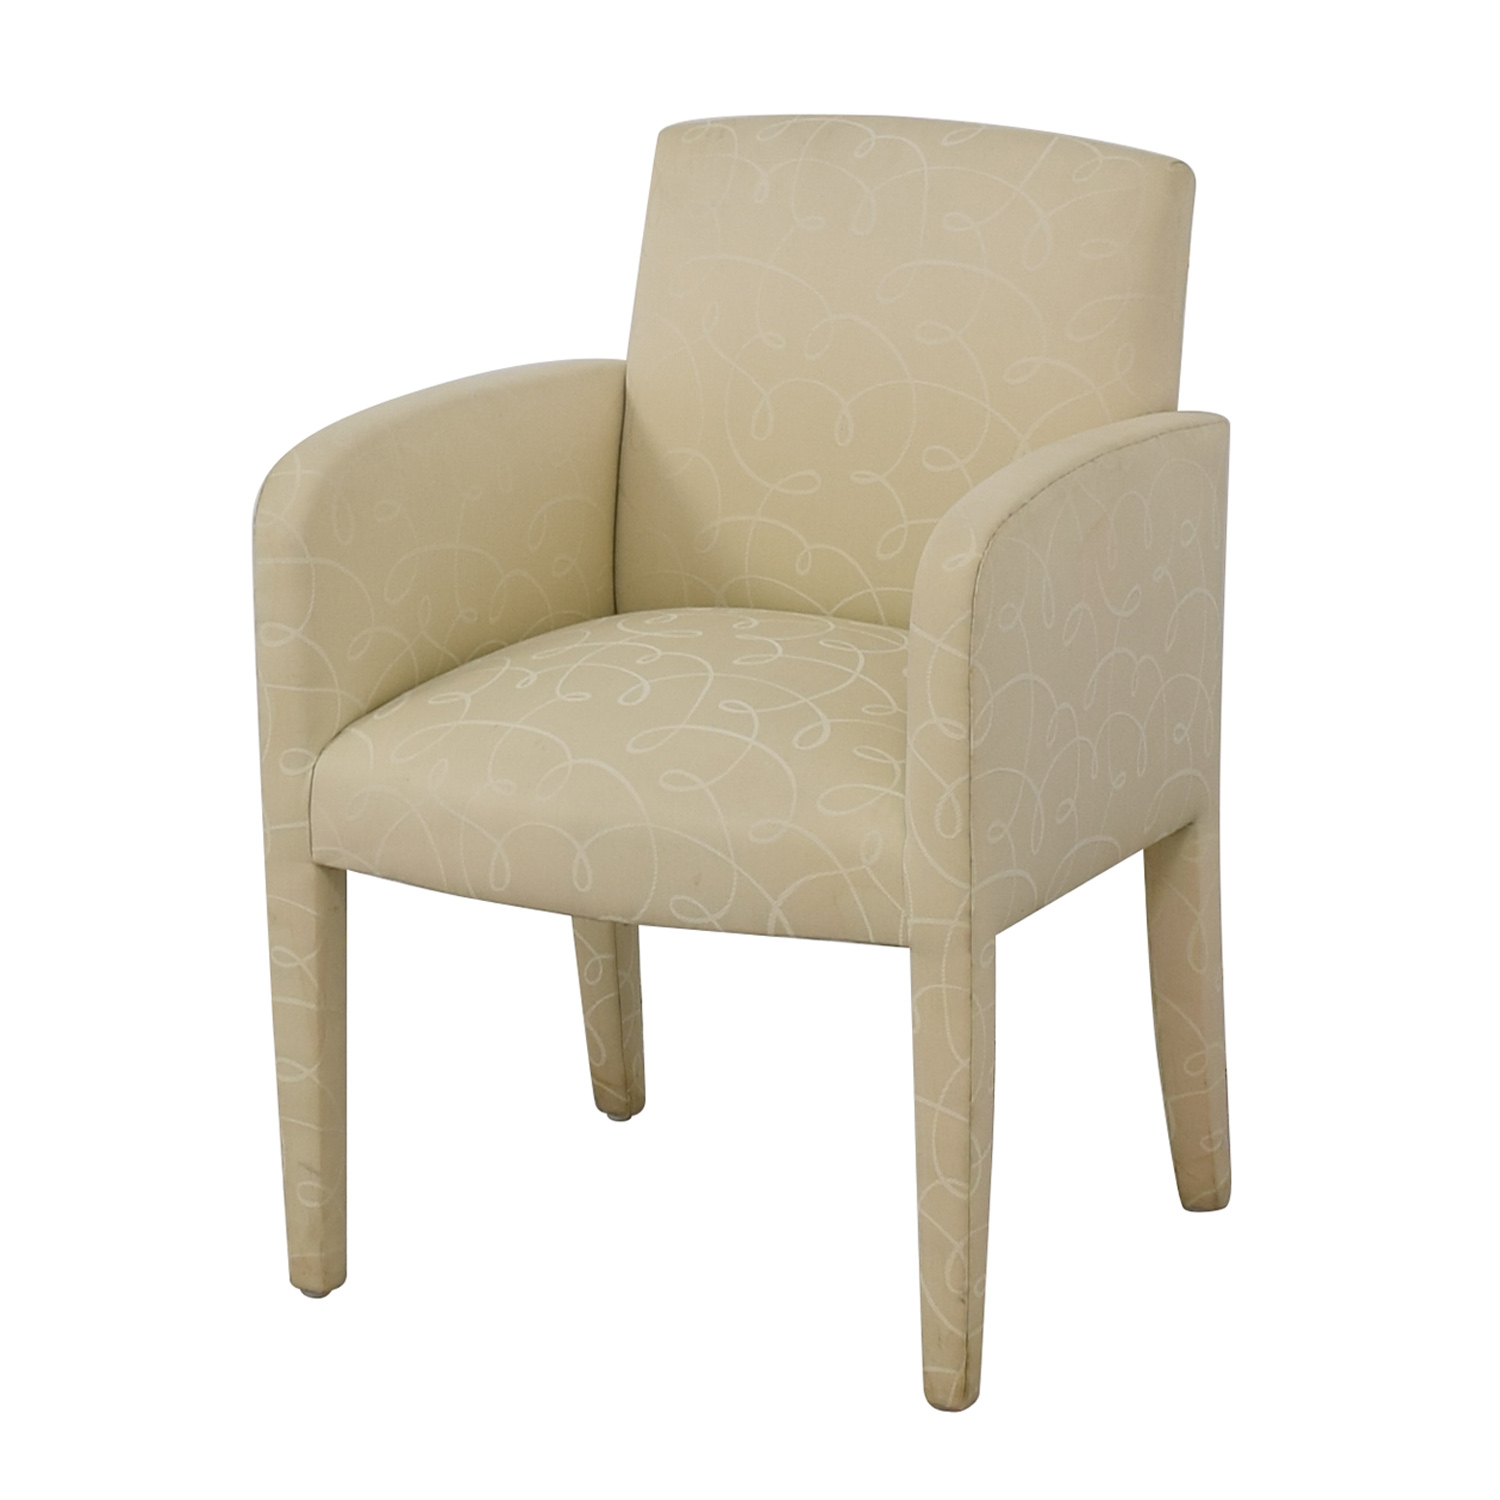 Upholstered Fabric Chair coupon